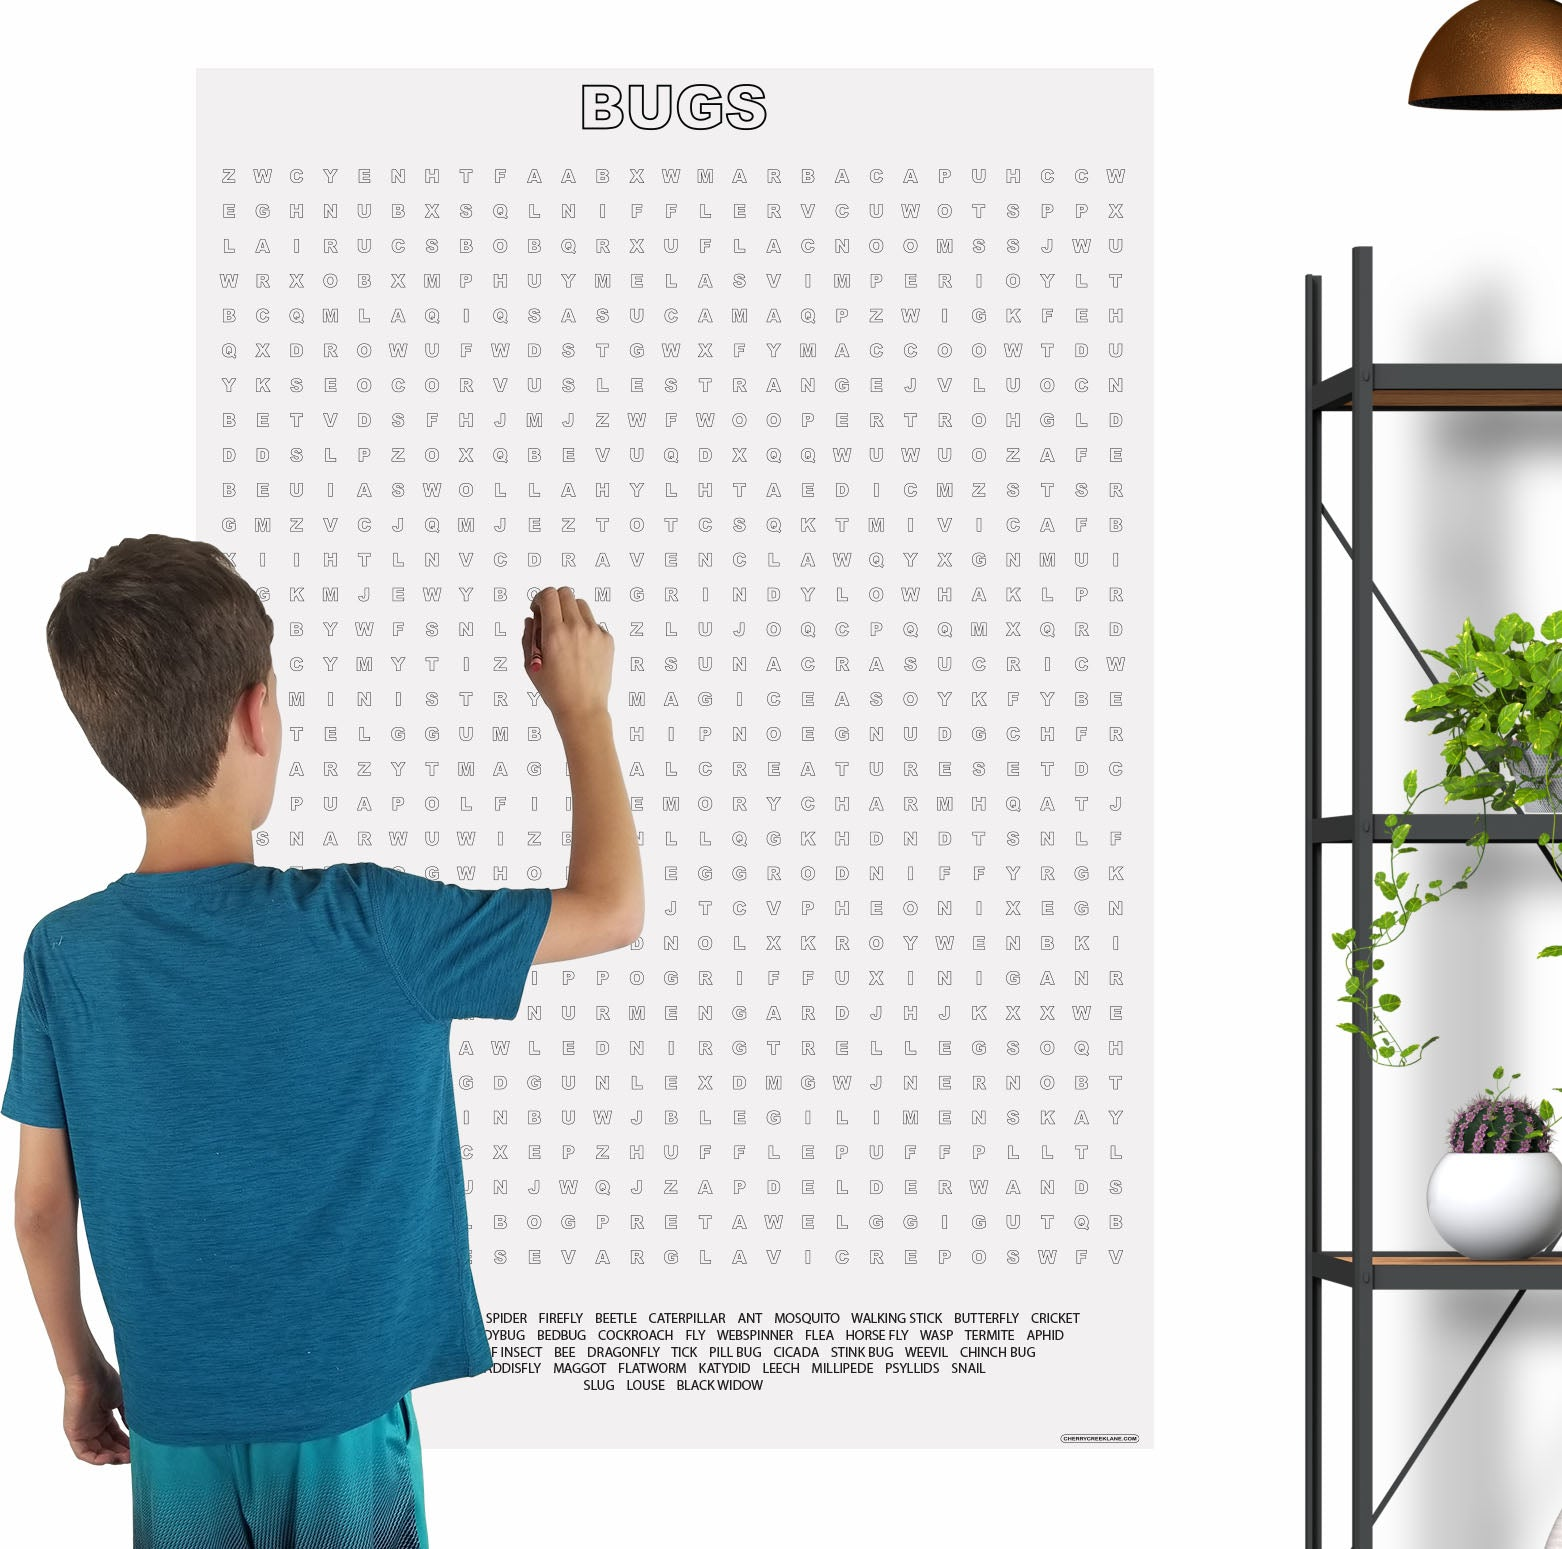 Bugs Giant Word Search Puzzle